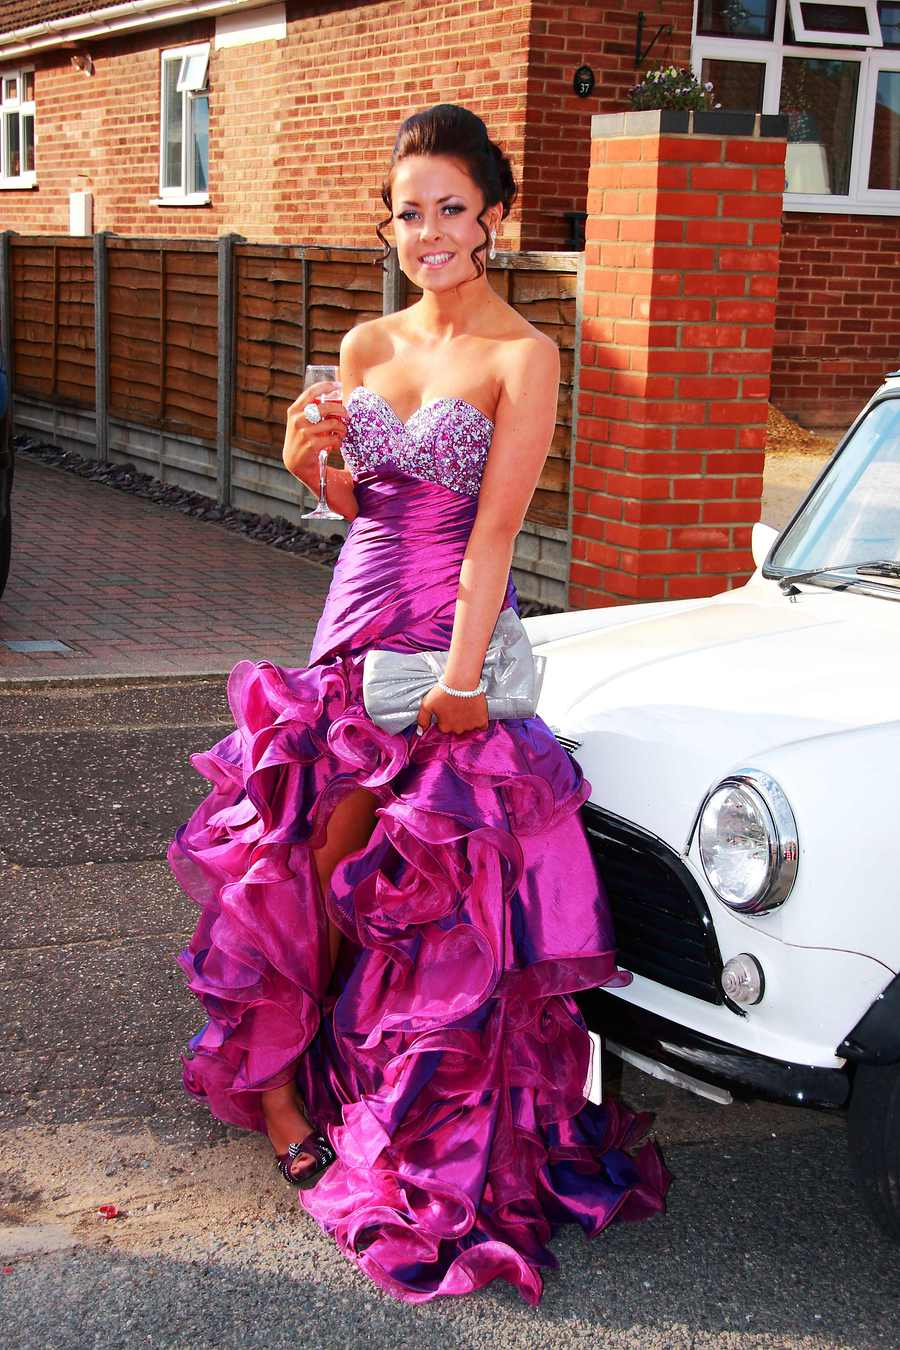 proms night 4 / Photography by radar6491 / Uploaded 6th May 2014 @ 08:20 PM